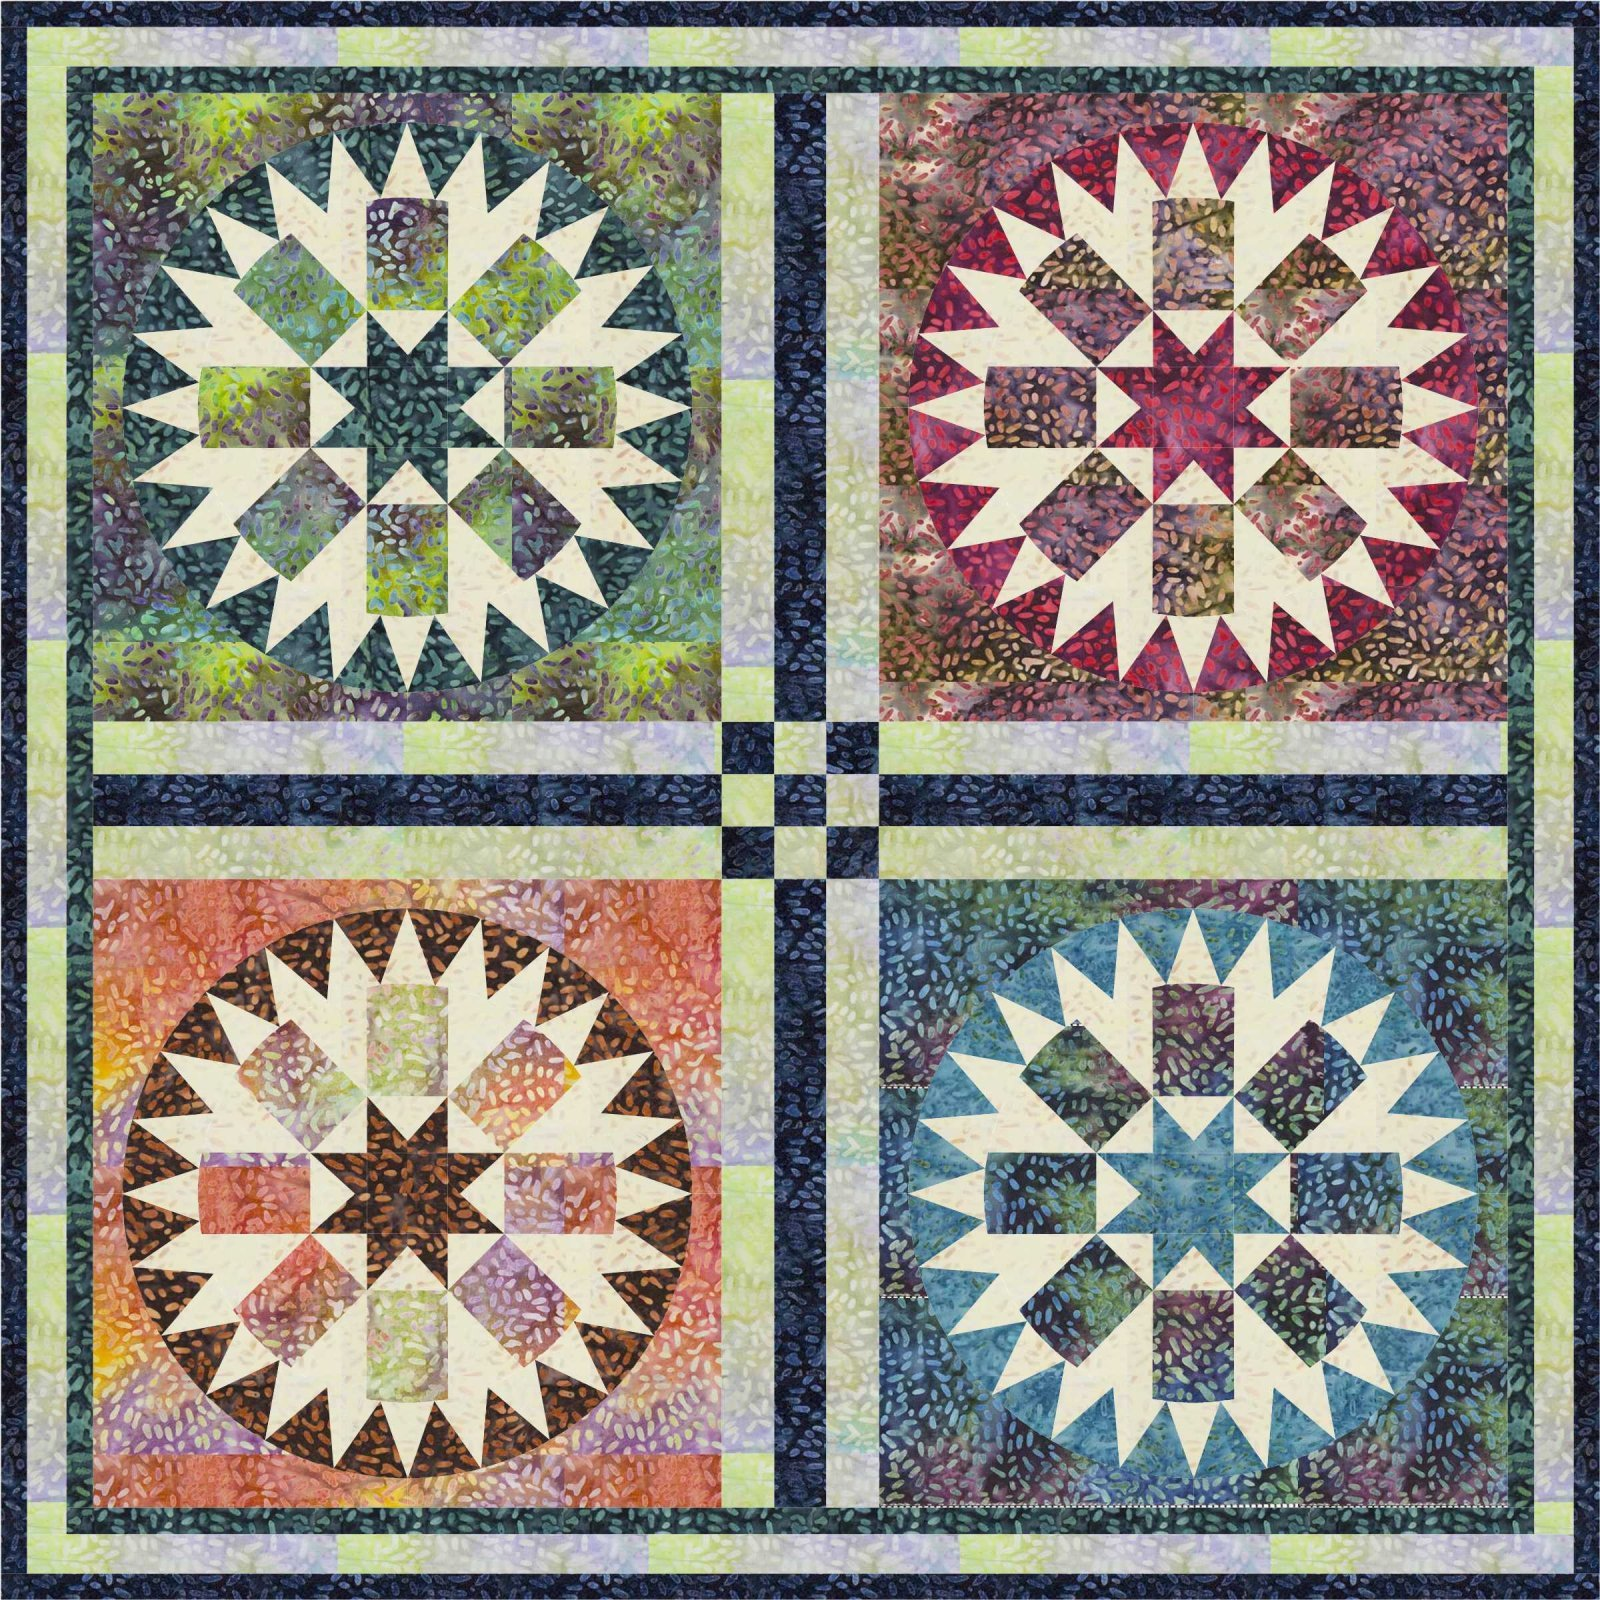 Eye on the Sky Quilt Pattern in 2 Sizes by Morning Glory Designs